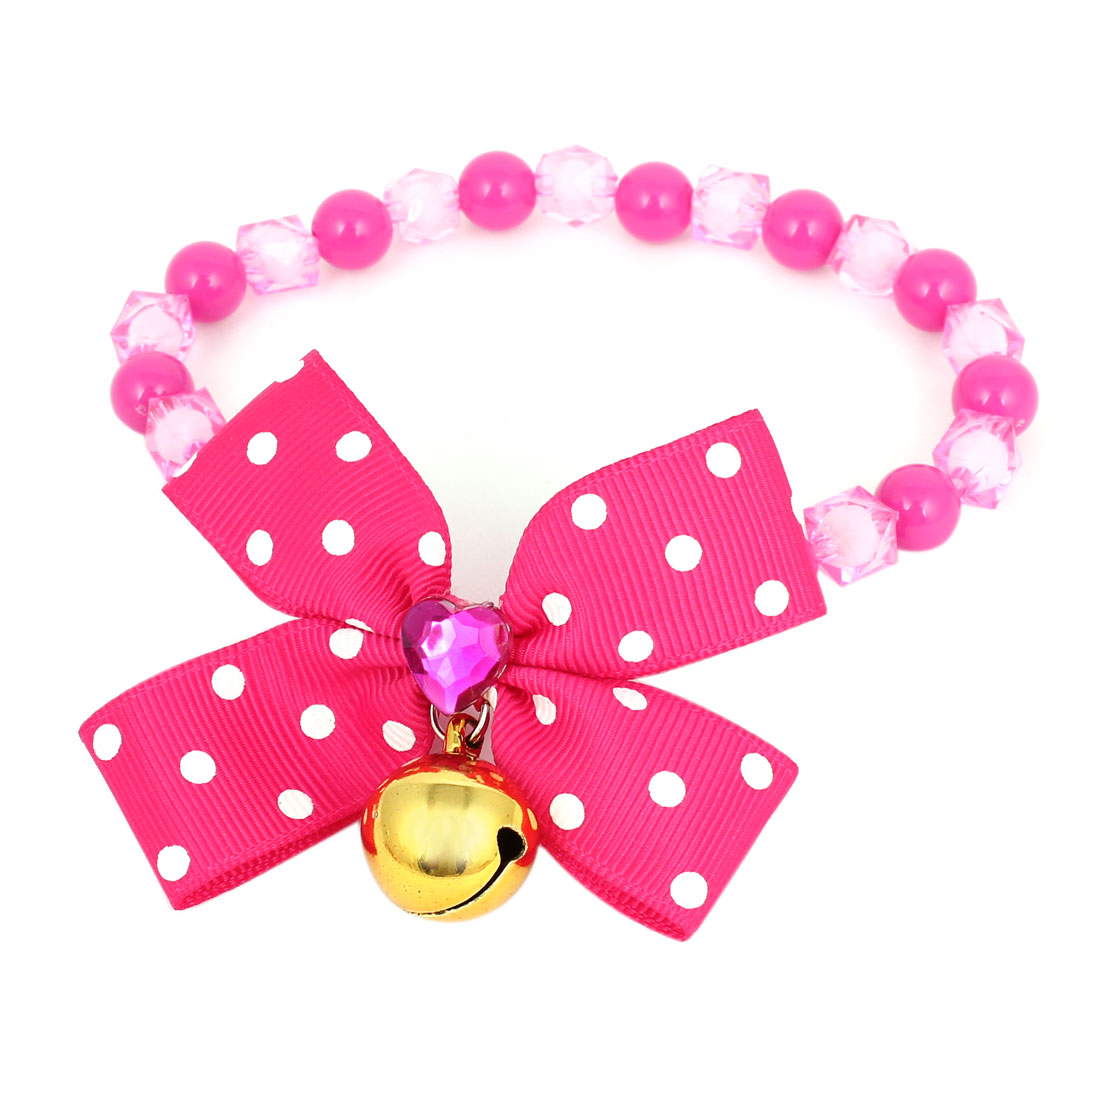 Metal Bell Pendant Bowtie Accent Pet Dog Plastic Beads Collar Necklace Fuchsia S